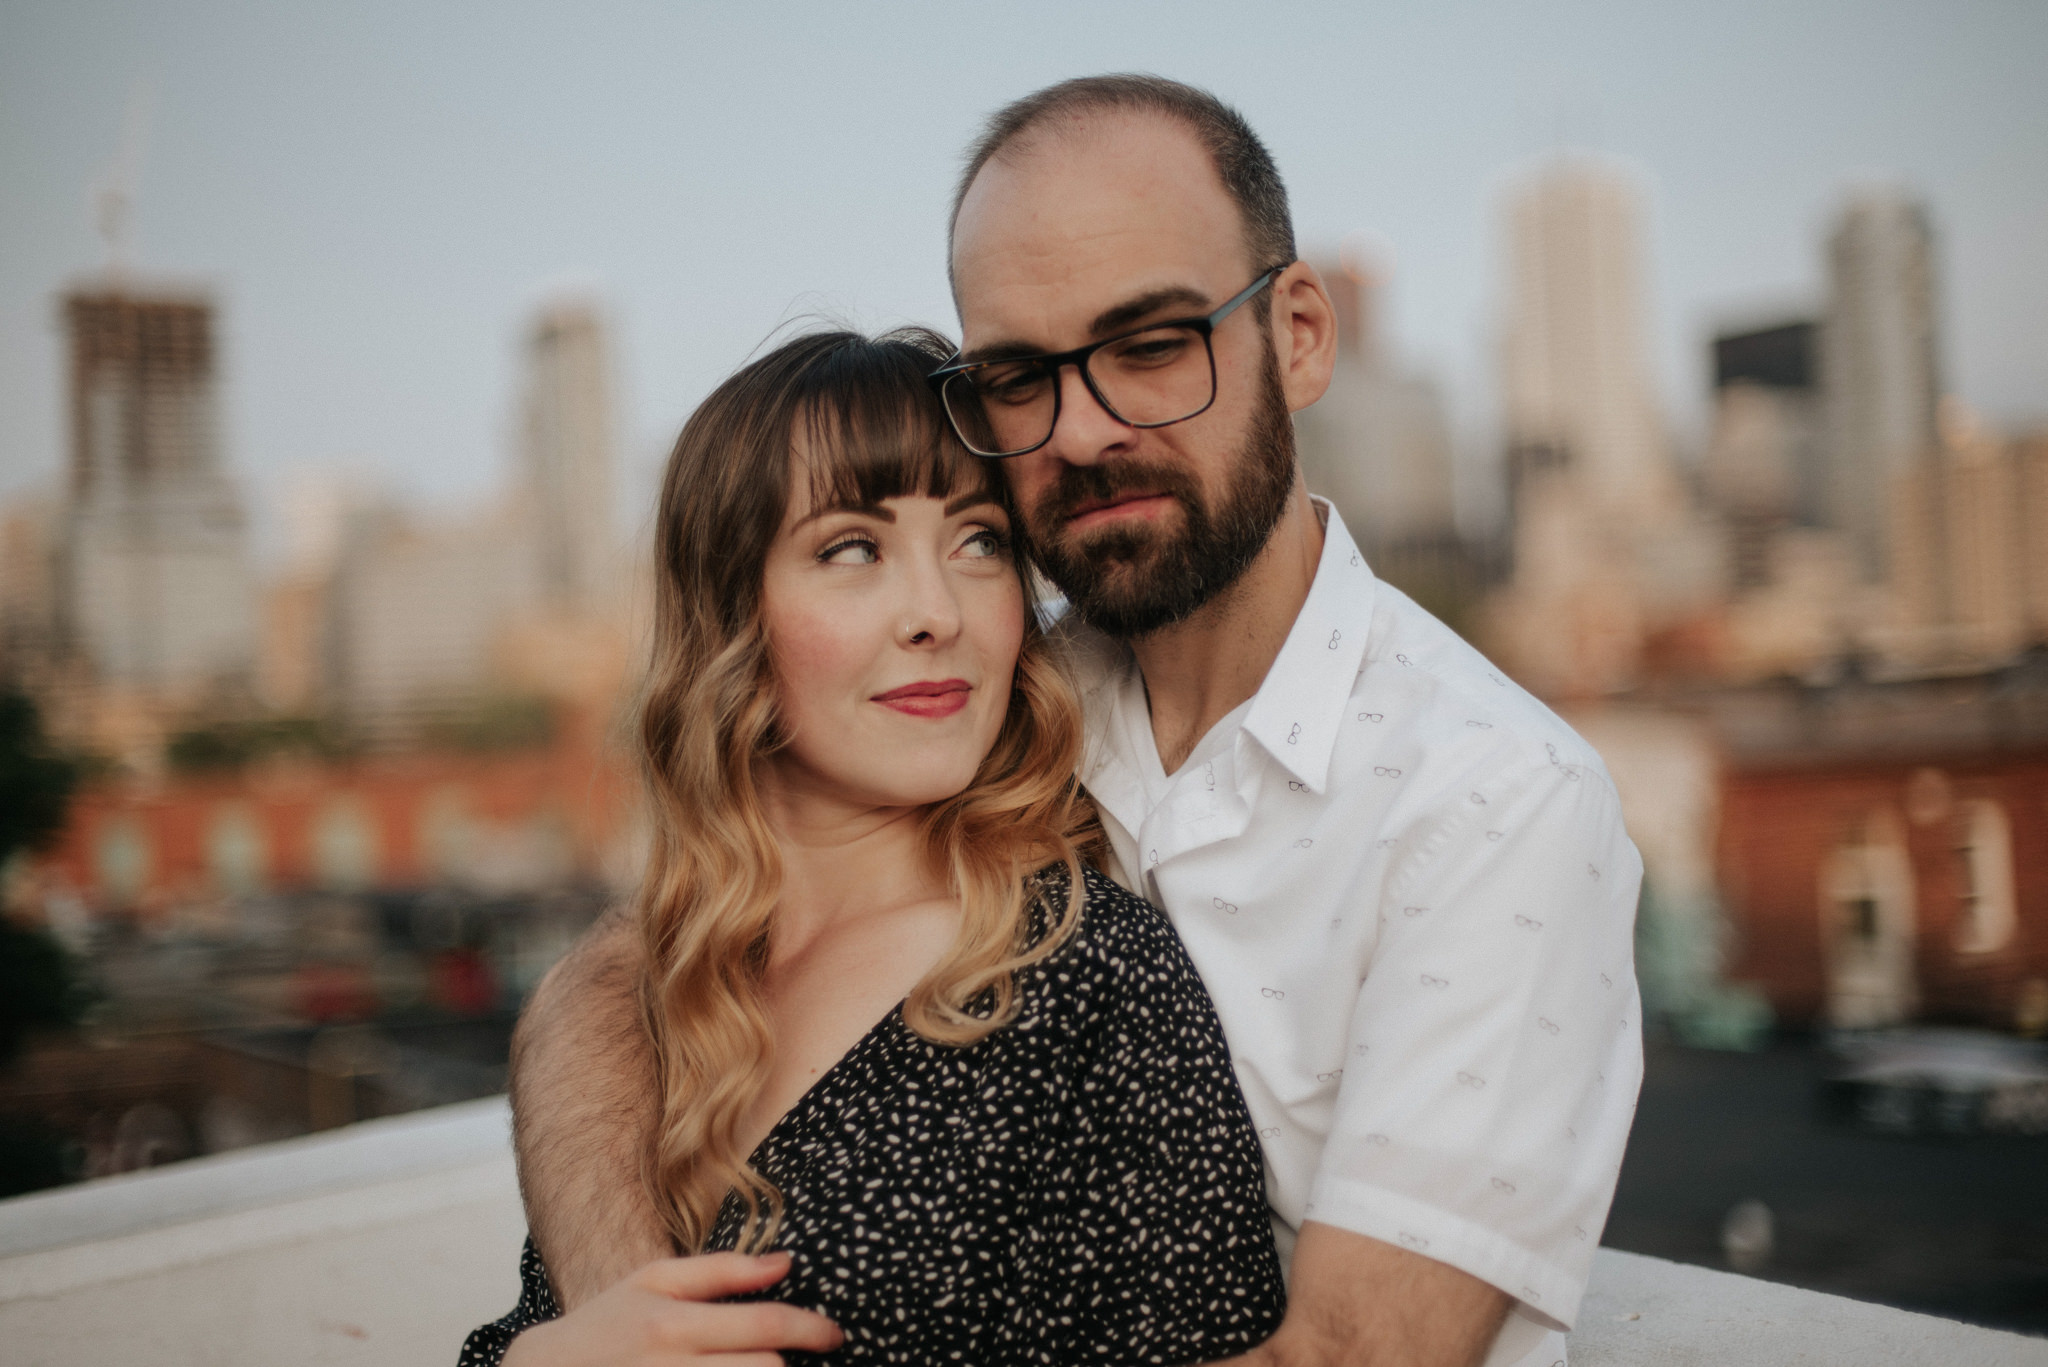 Rooftop Toronto engagement shoot